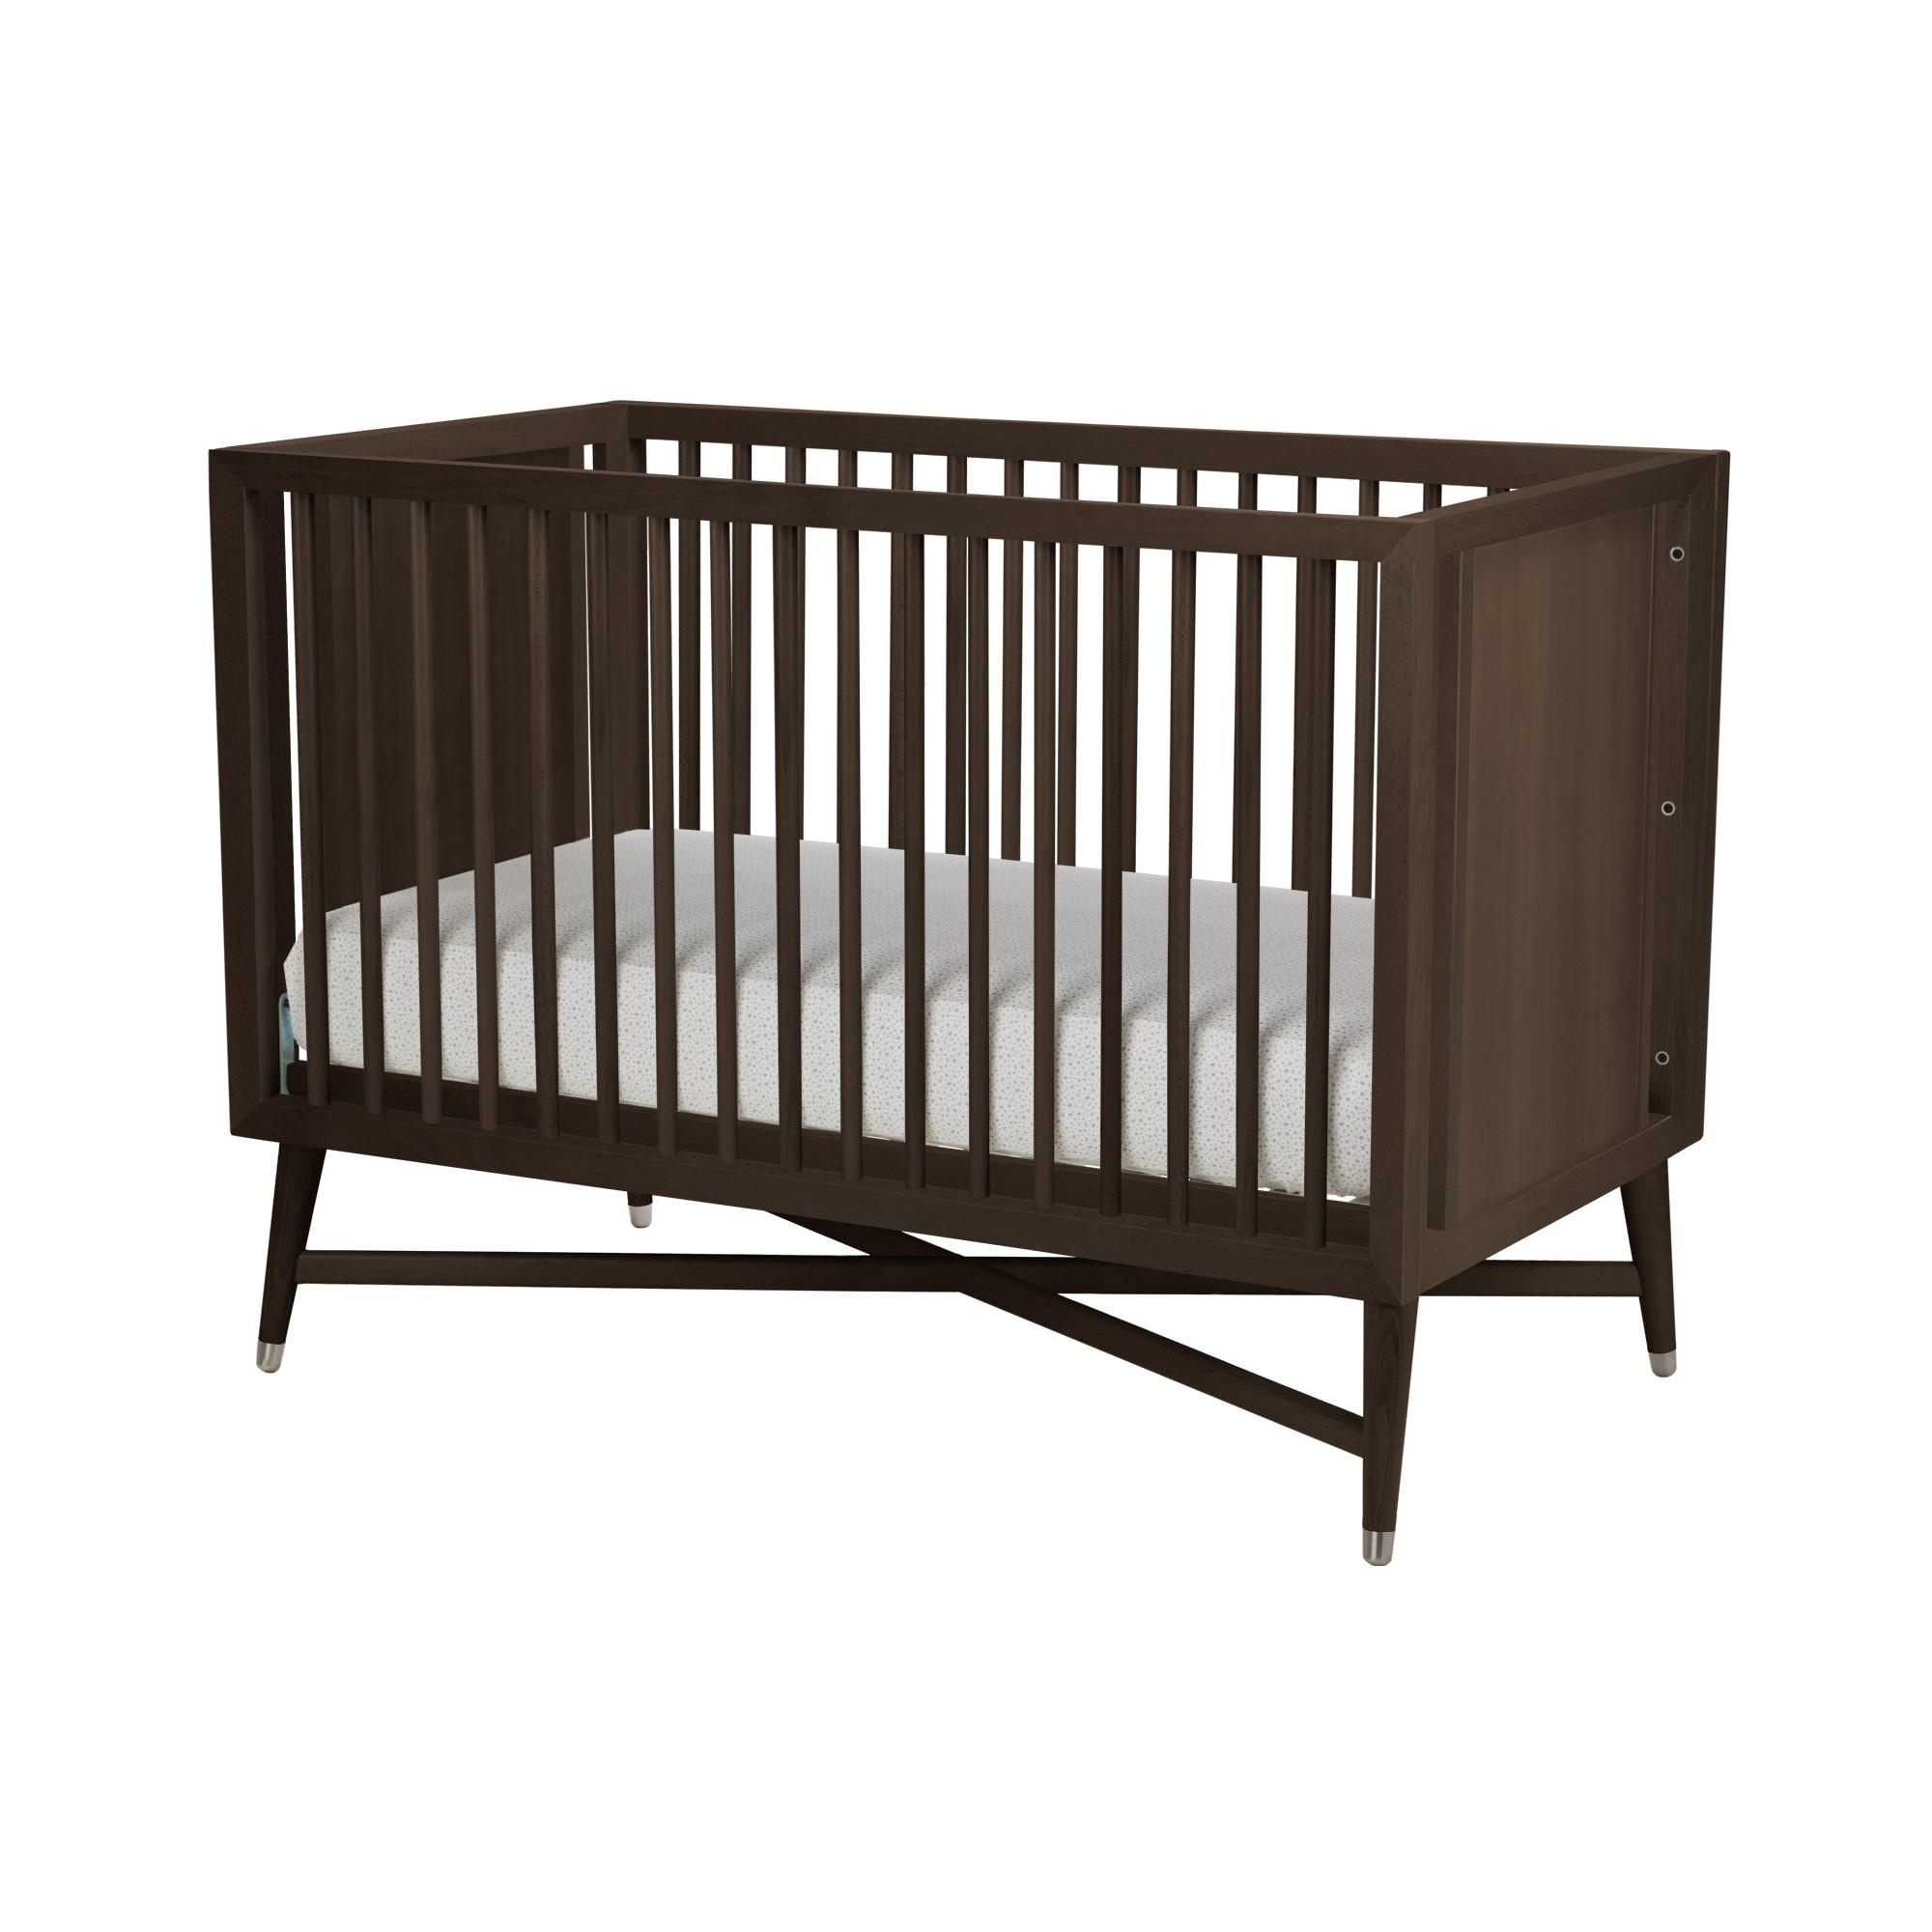 children 39 s bed wooden mid century dwellstudio luxury